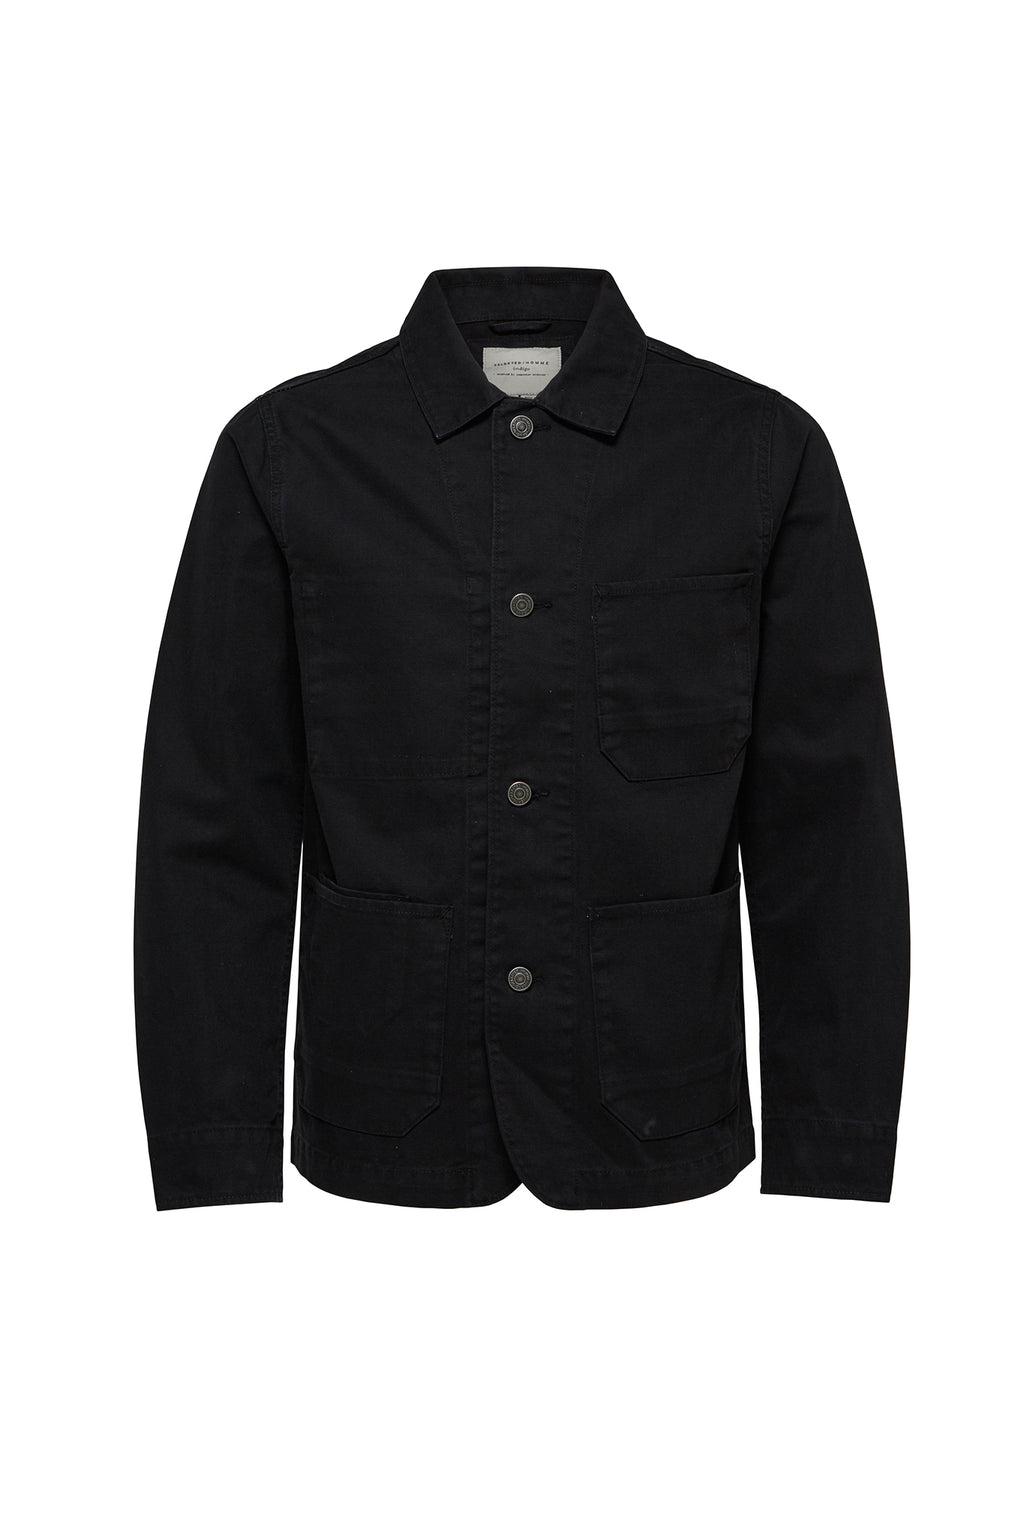 Canvas Worker Jacket - Black - Audace Copenhagen